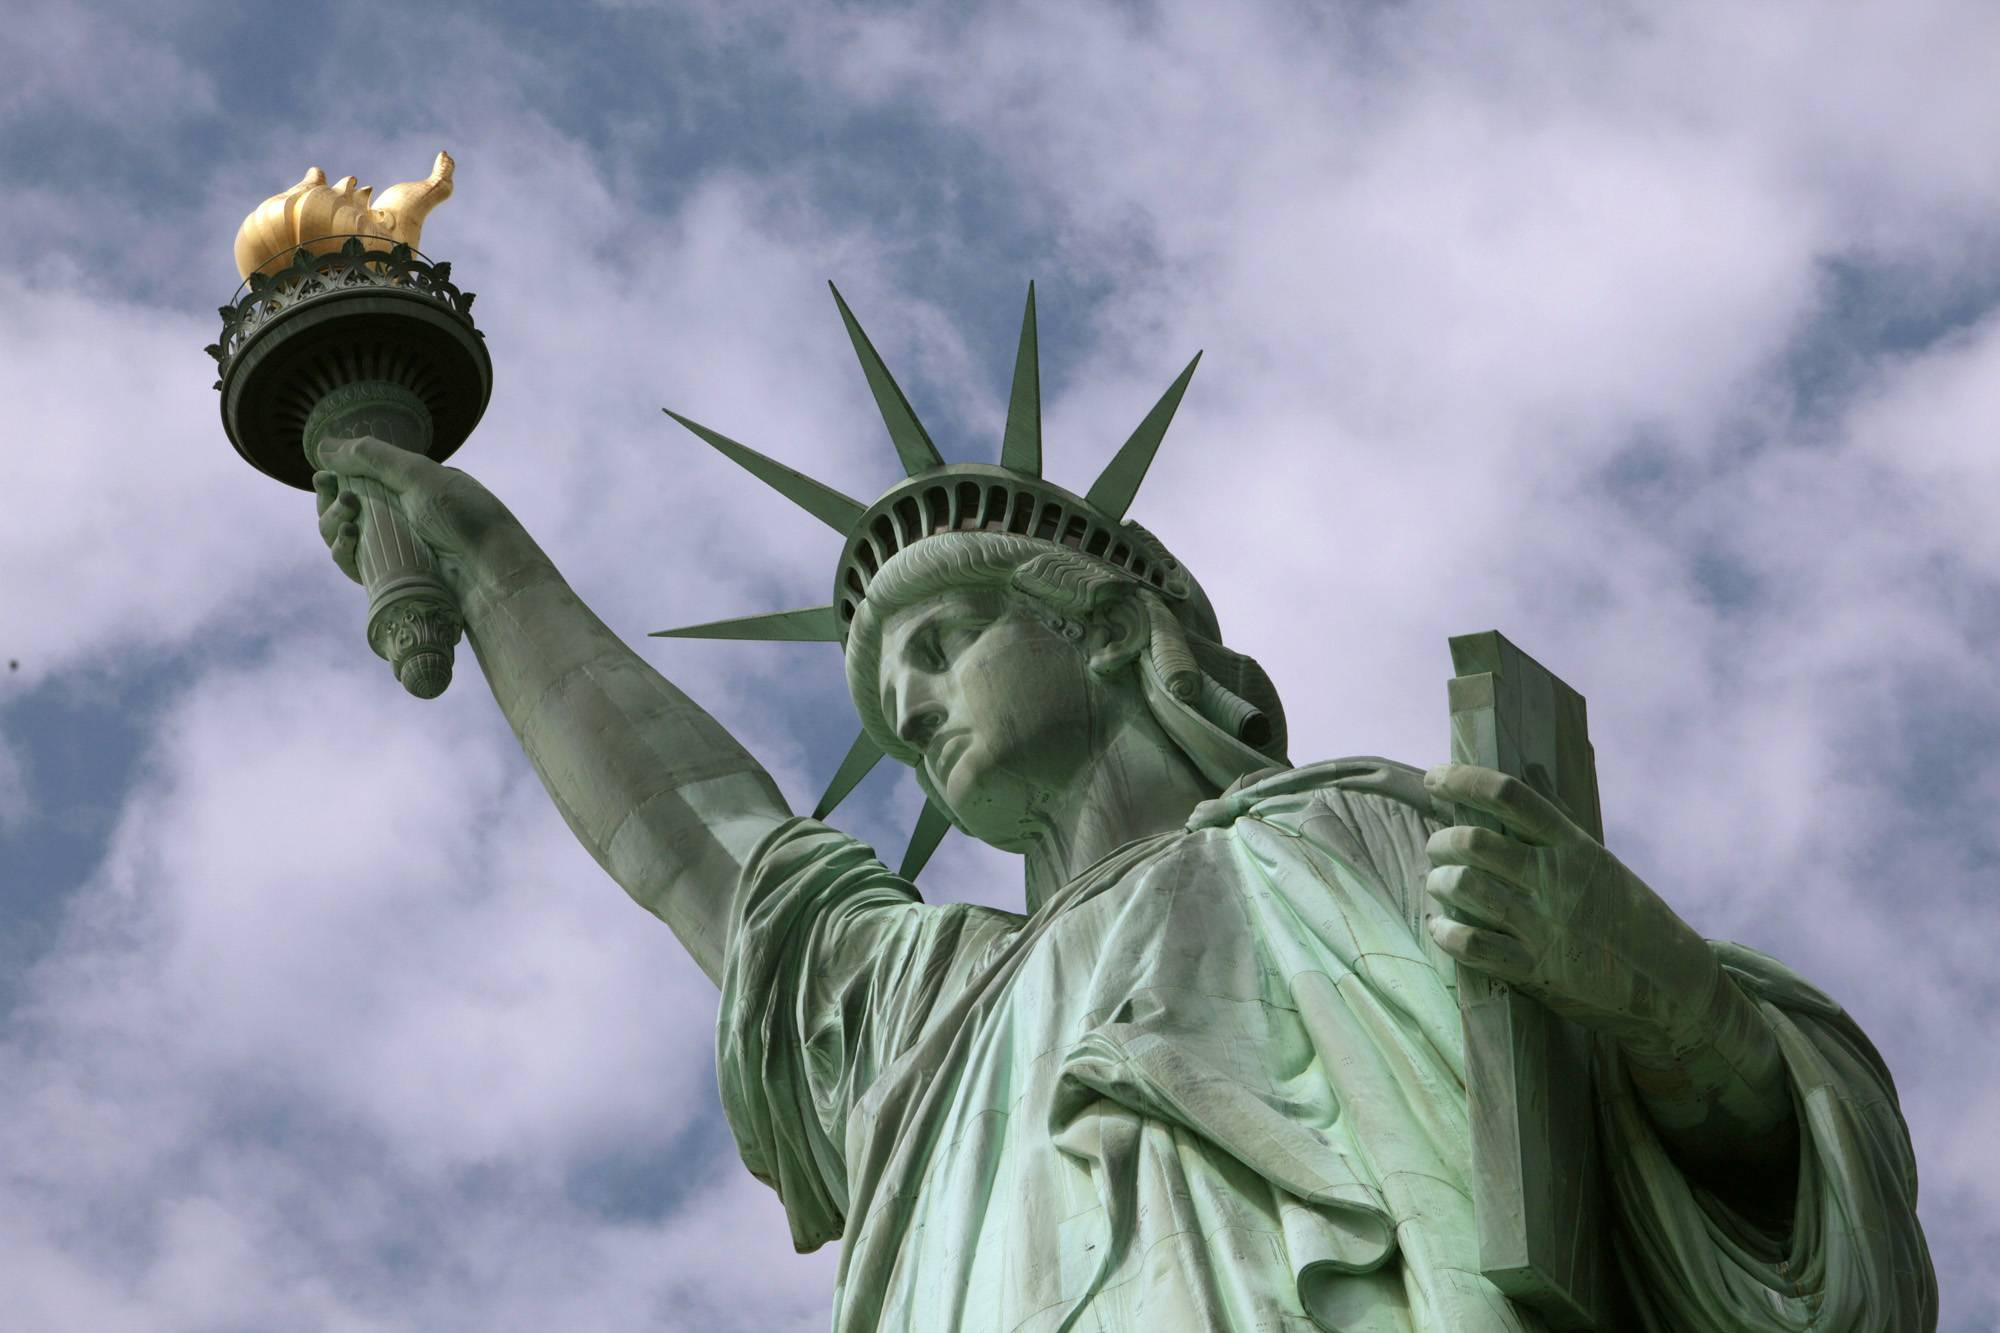 "Dedicated in 1886, the Statue of Liberty in New York Harbor quickly became a symbol of our country's willingness to welcome strangers to our ""Nation of Immigrants."" But we've been struggling with how best to do that since the 18th century."